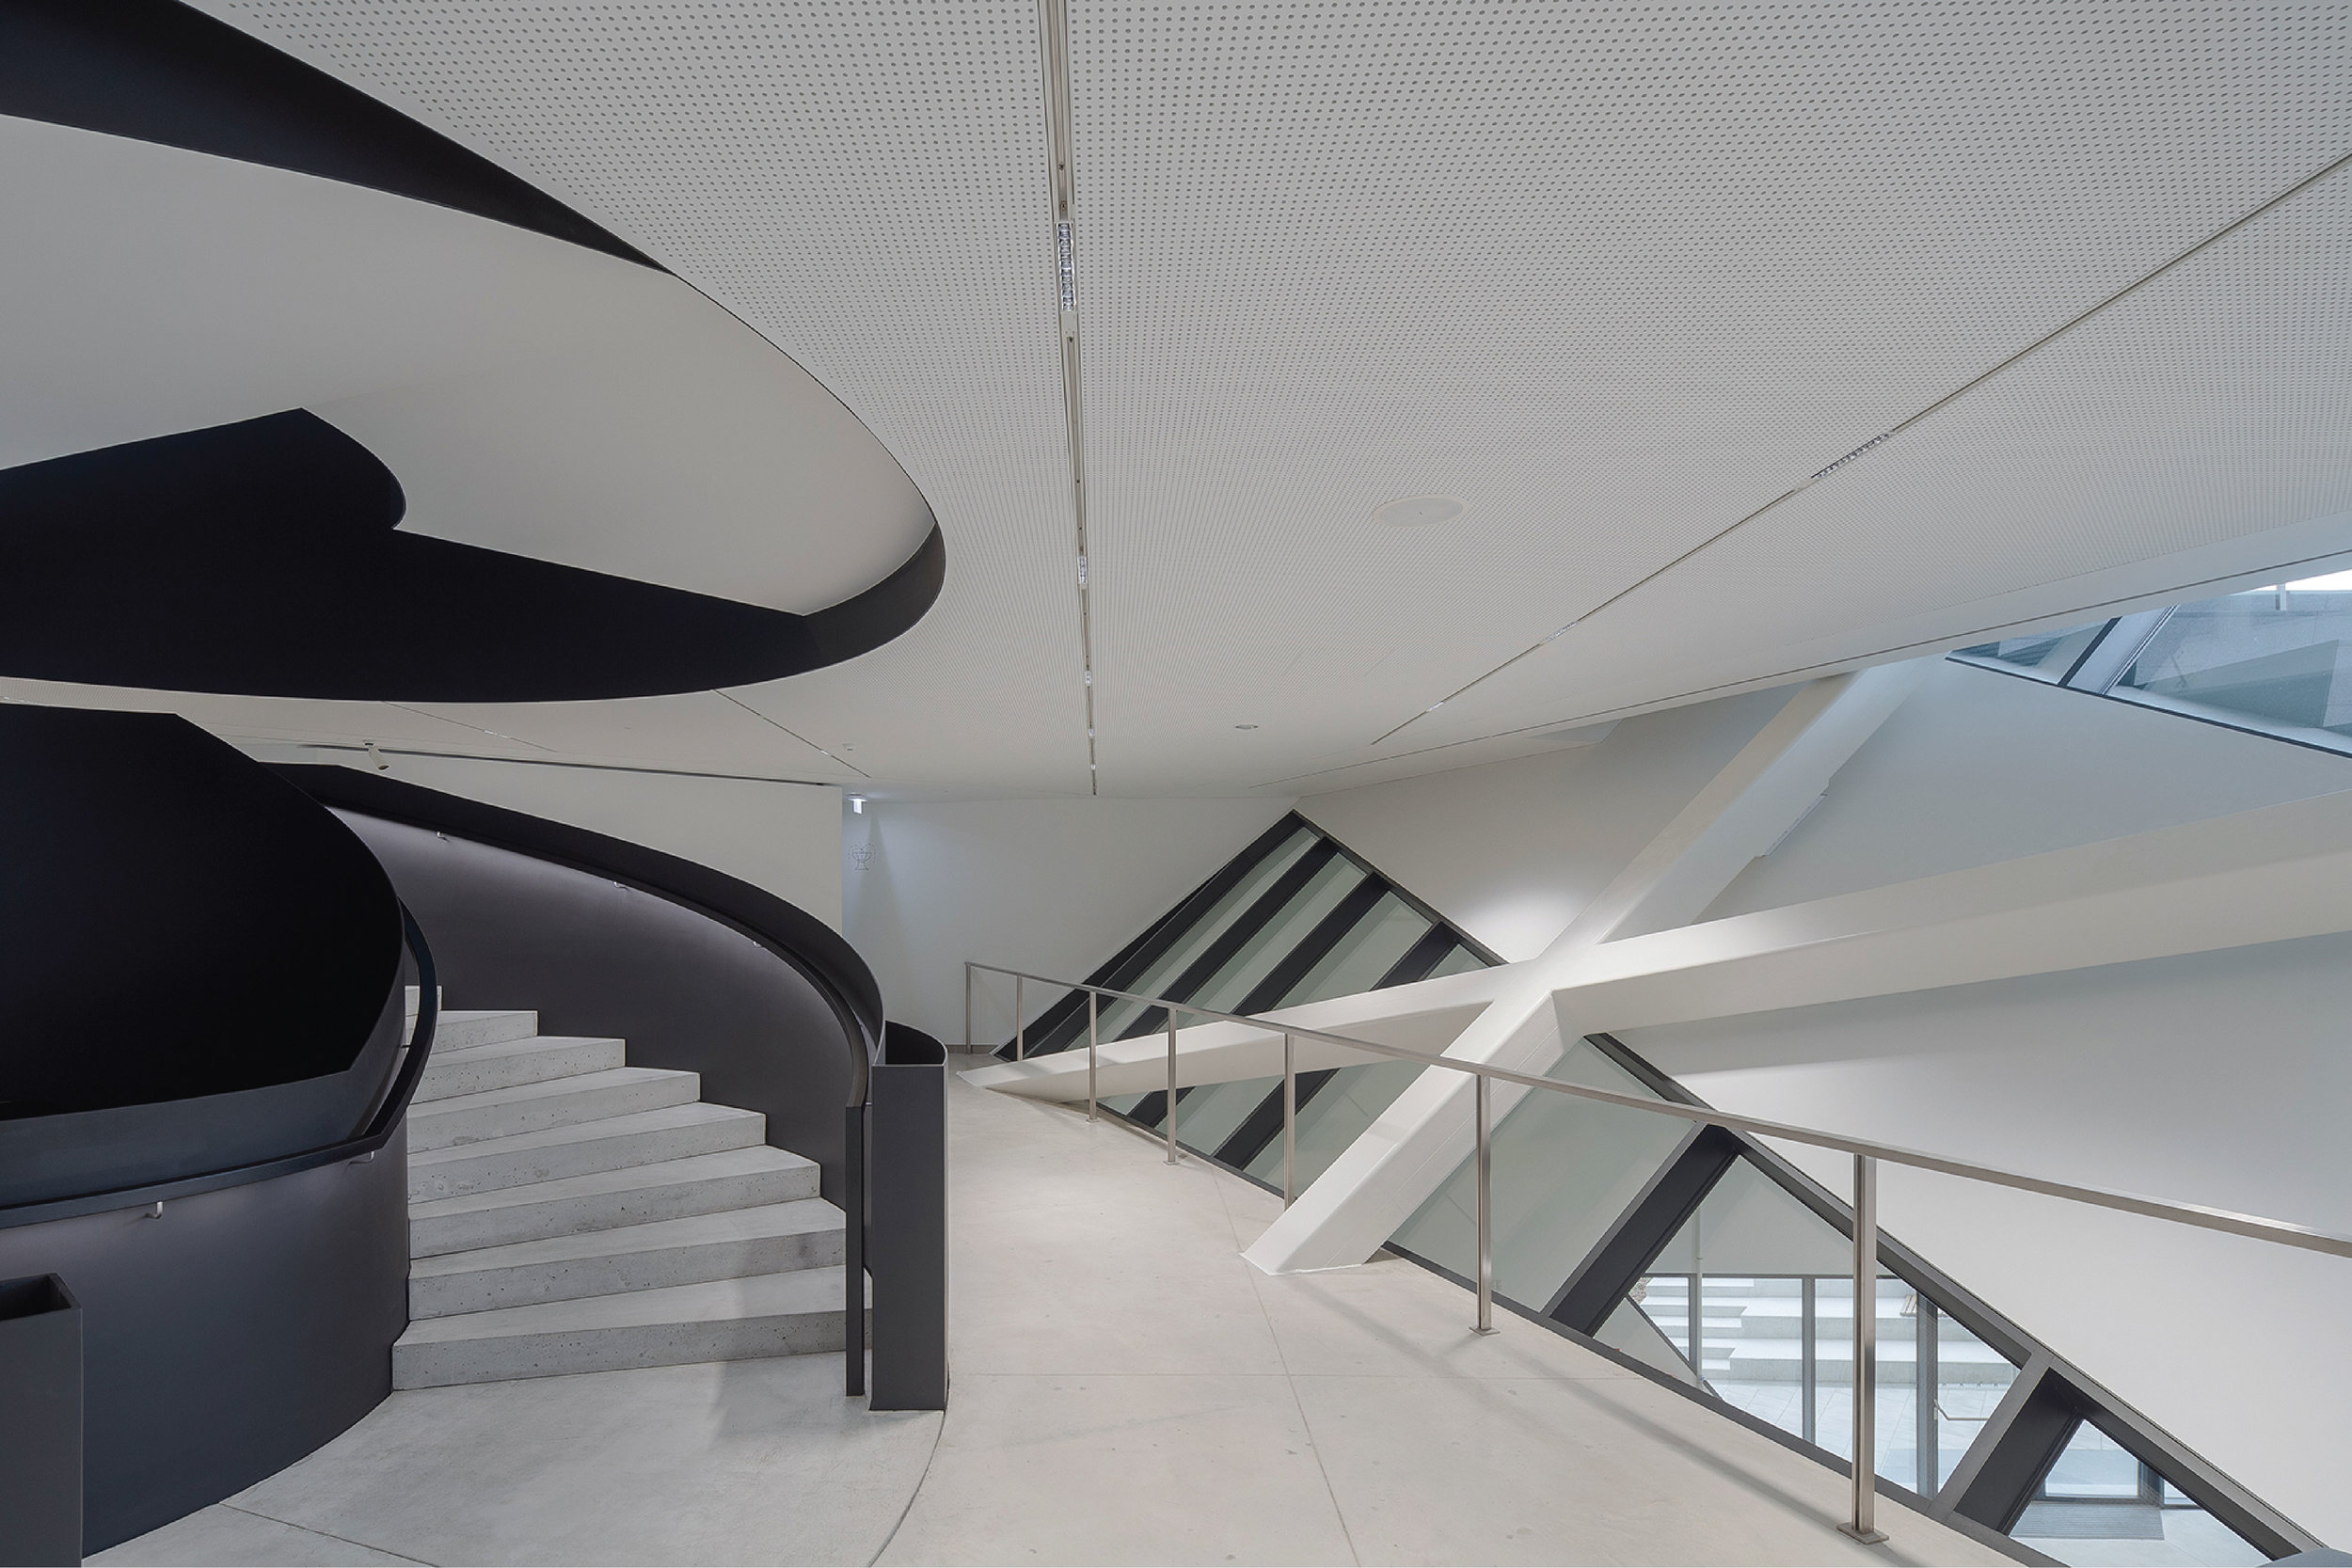 DOARCHITECTS_MO museum 03.jpg